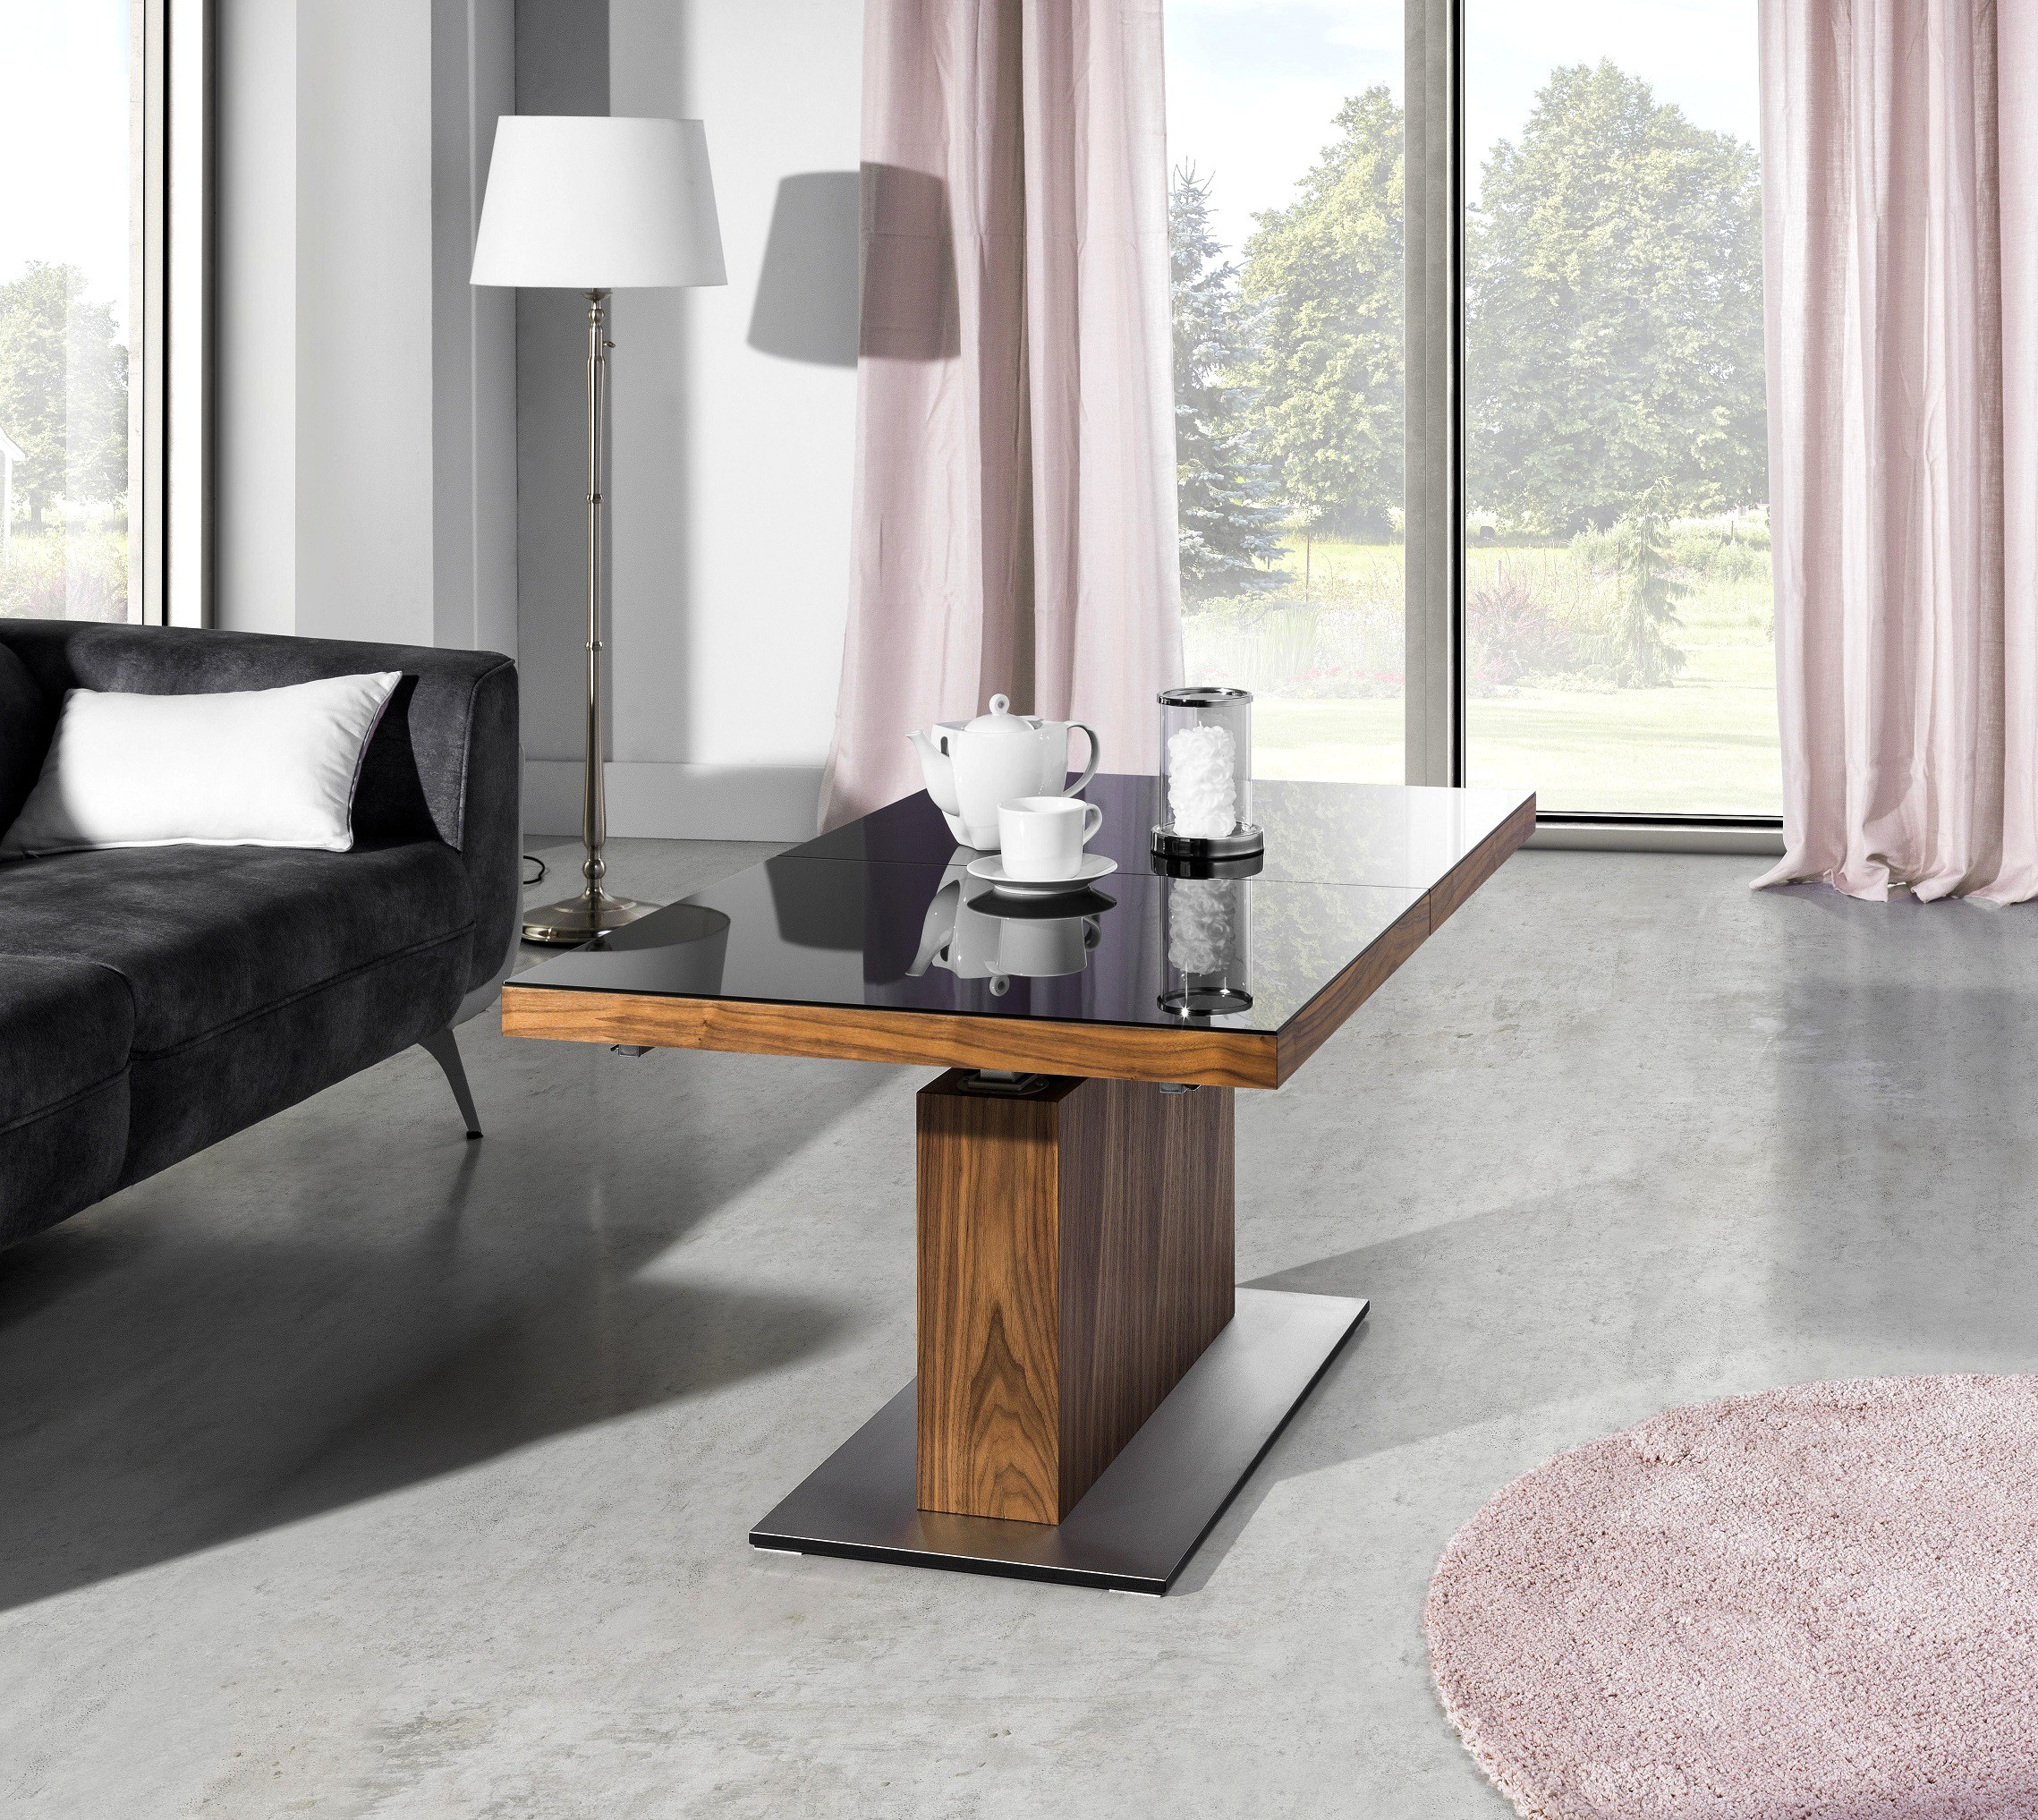 couchtisch mn 3 walnuss nussbaum schwarzglas h henverstellbar ausziehbar couchtische nussbaum. Black Bedroom Furniture Sets. Home Design Ideas